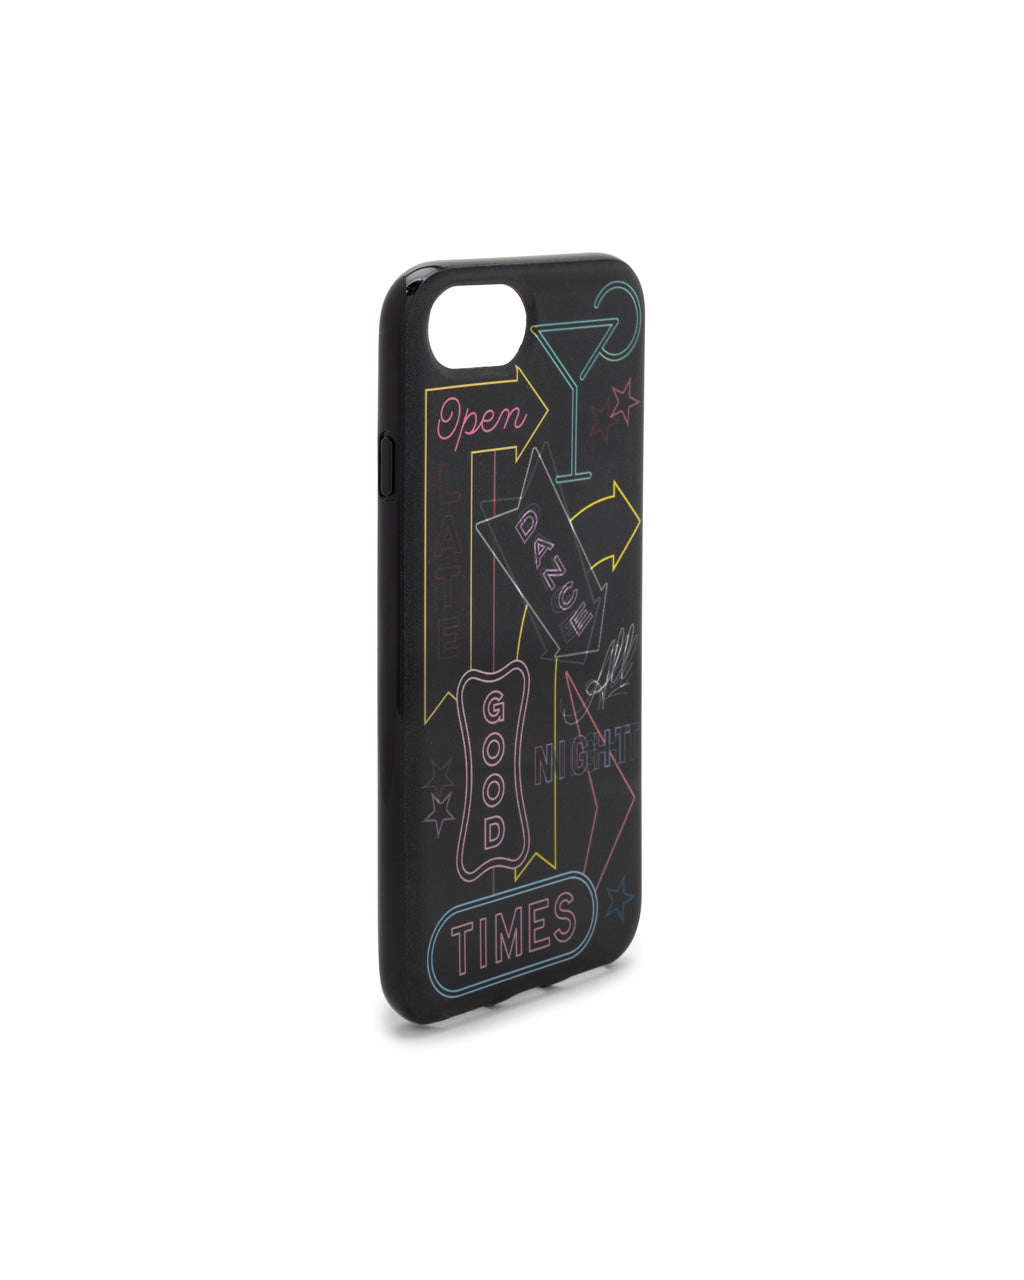 Side view of phone case